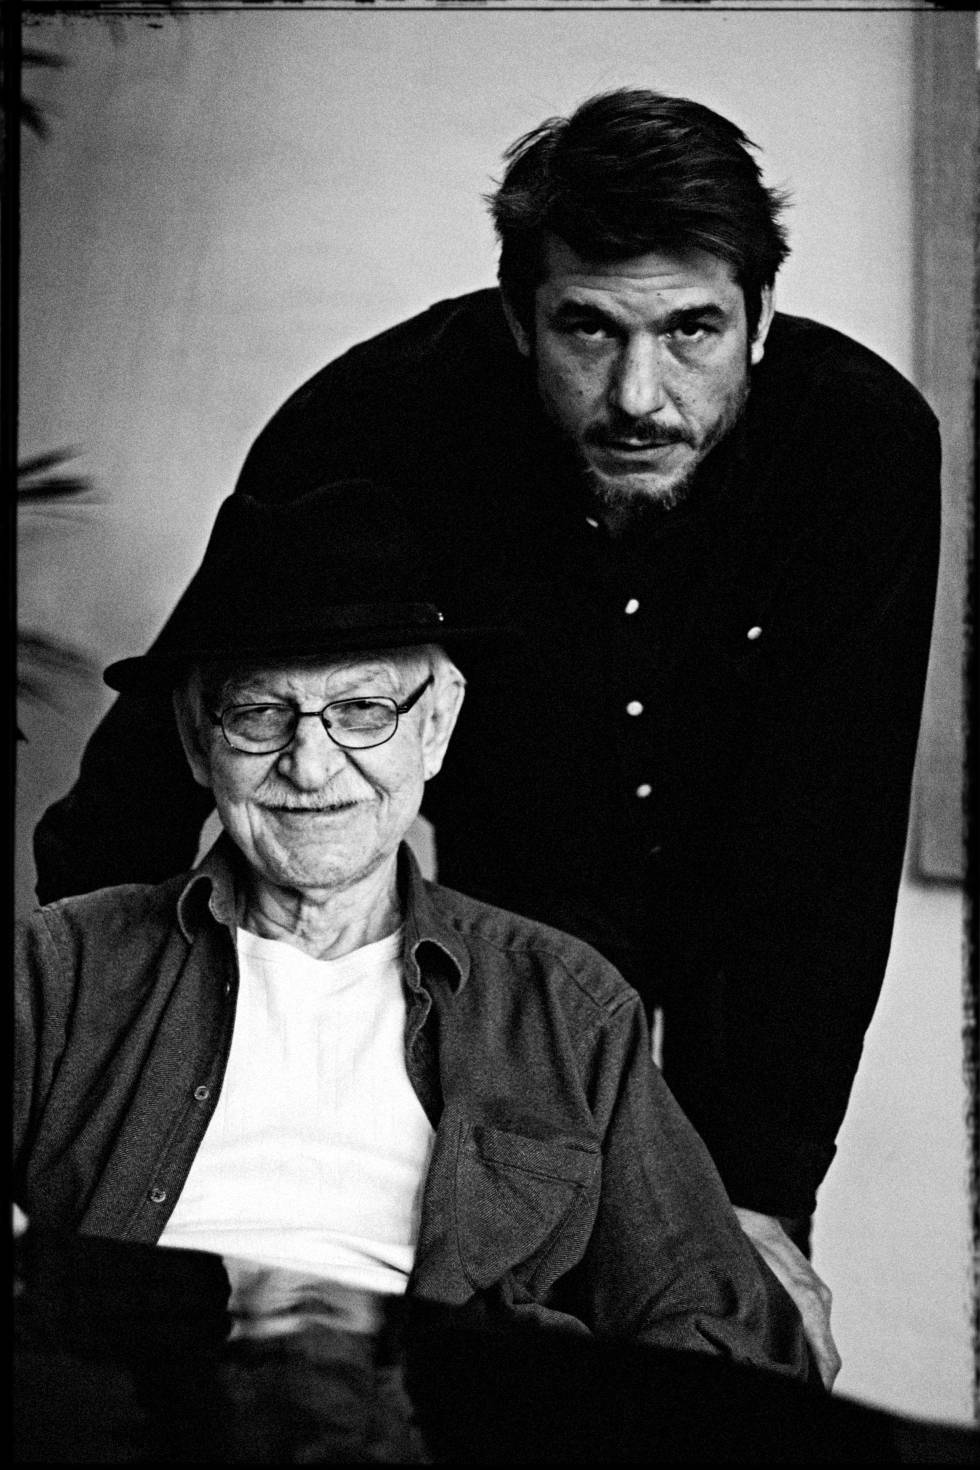 Antonio y Jorge Escohotado.